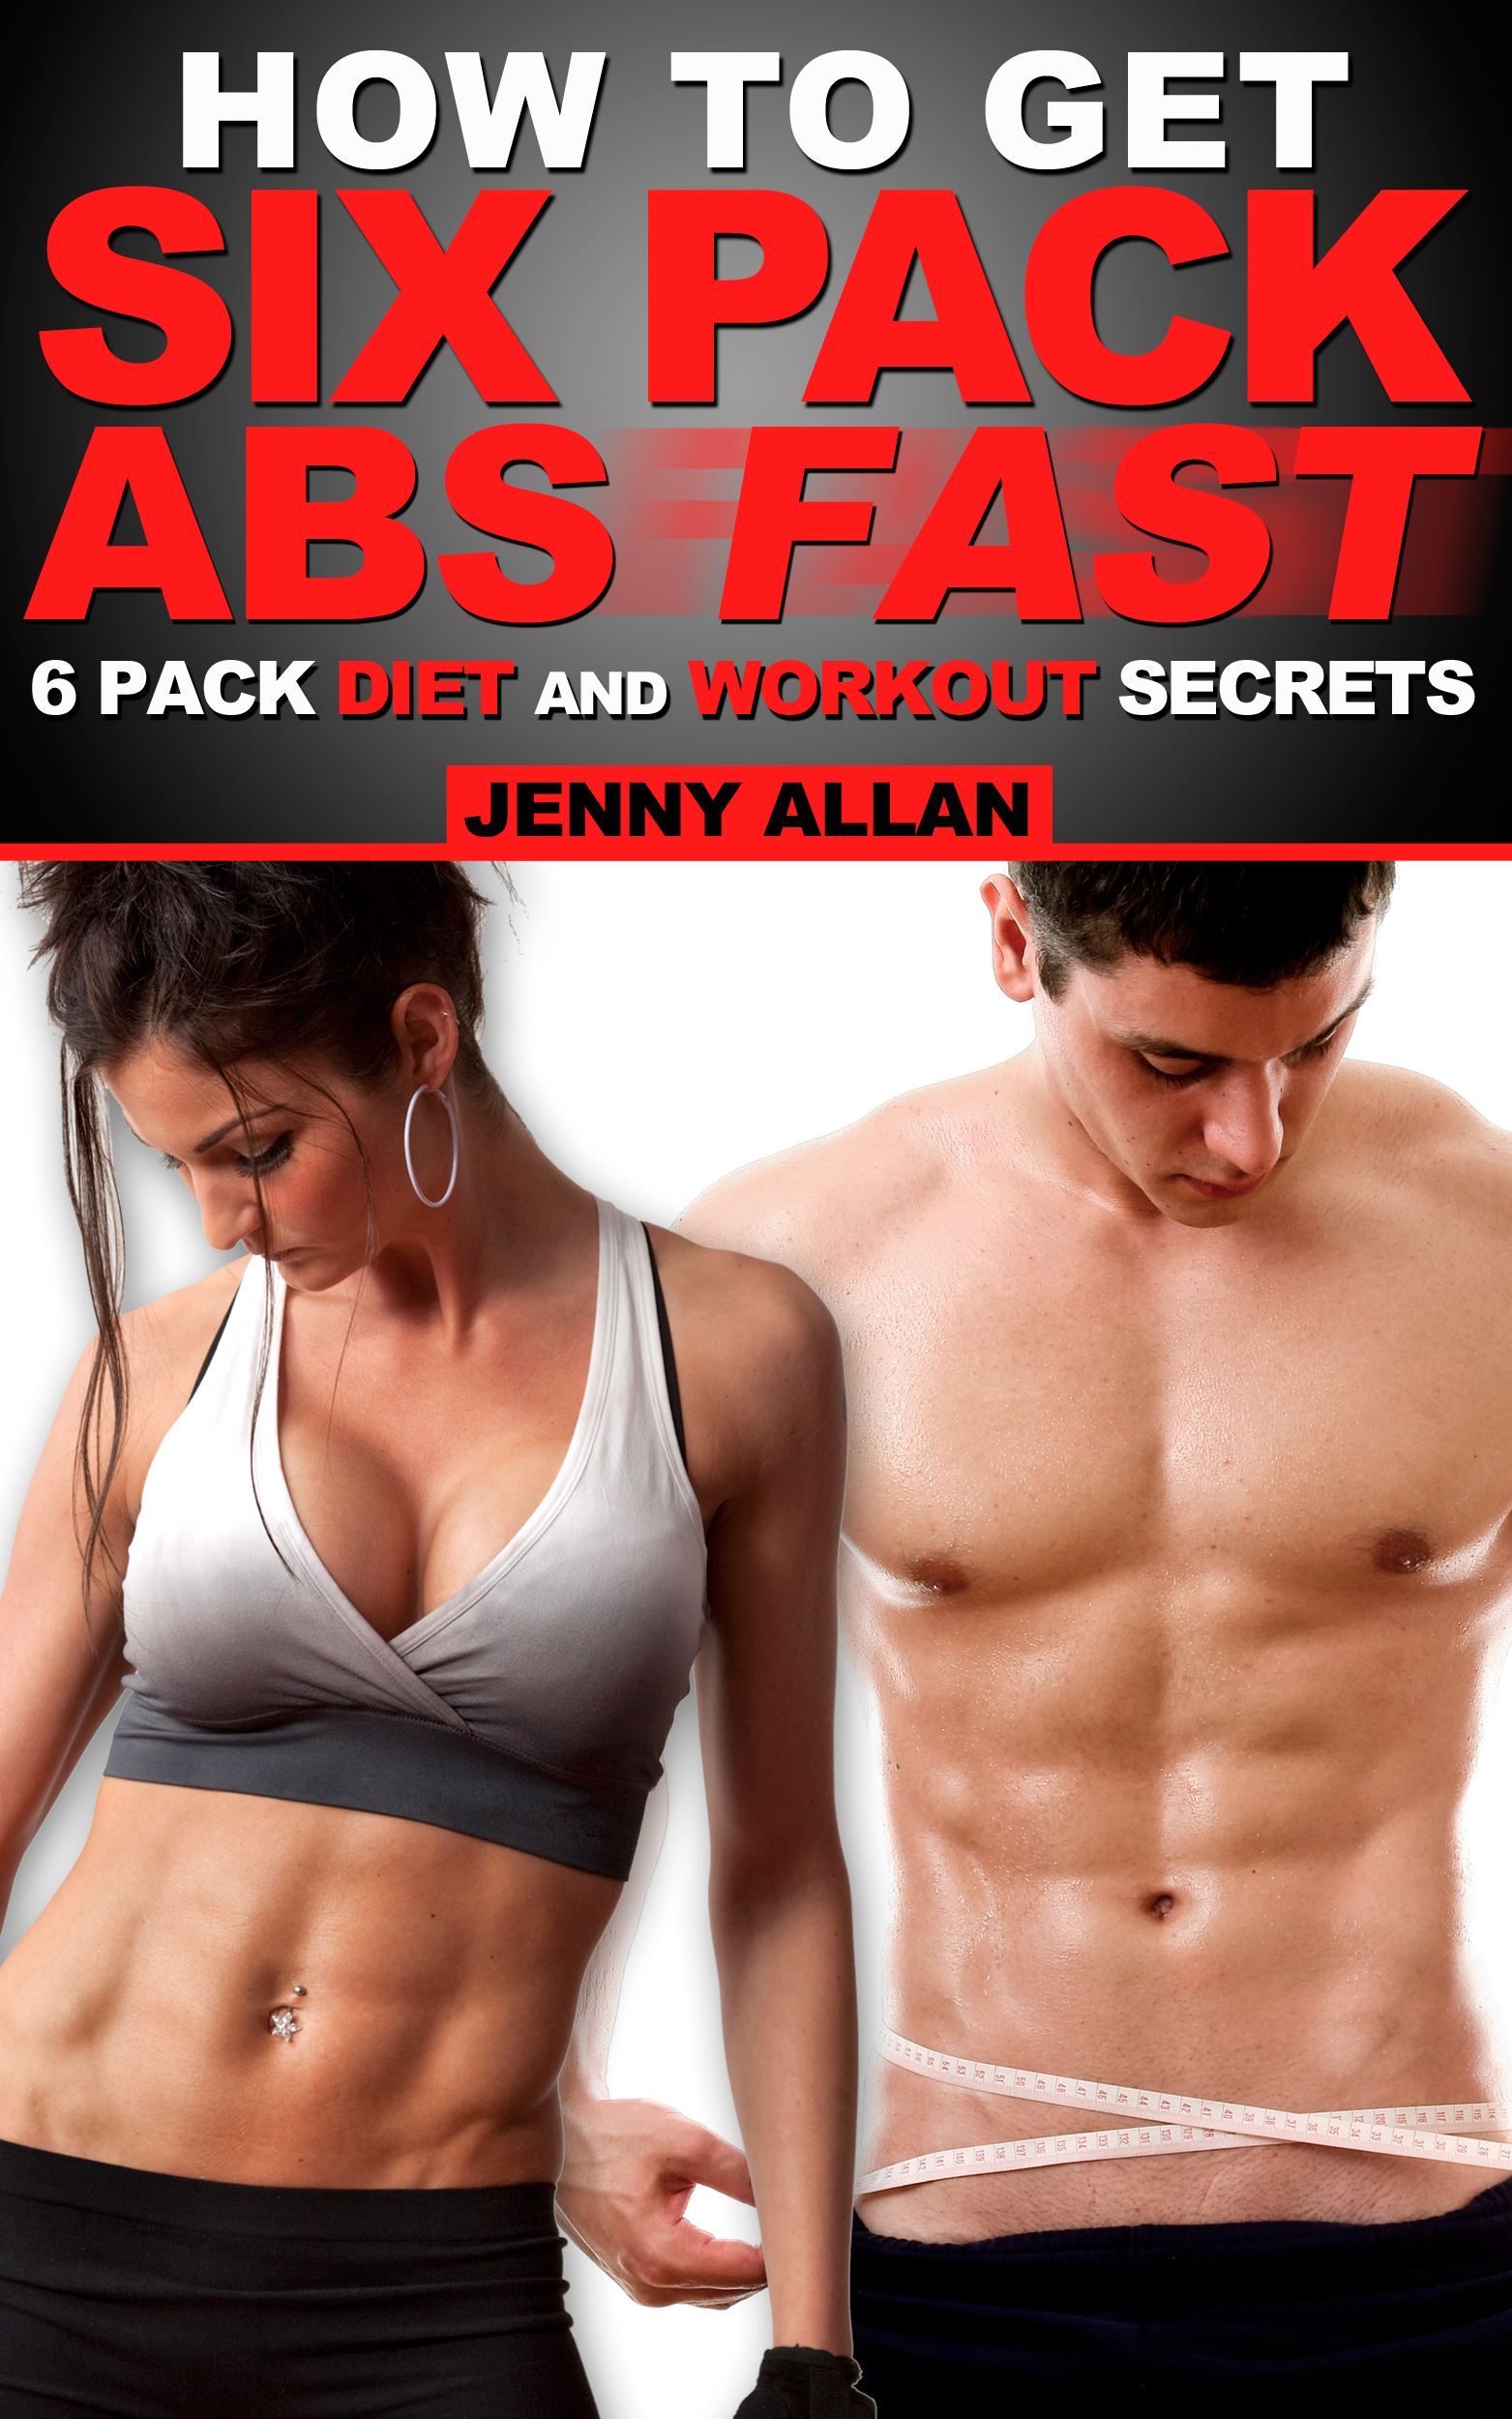 Smashwords \u2013 How To Get Six Pack Abs - 6 Pack Diet and Workout ...